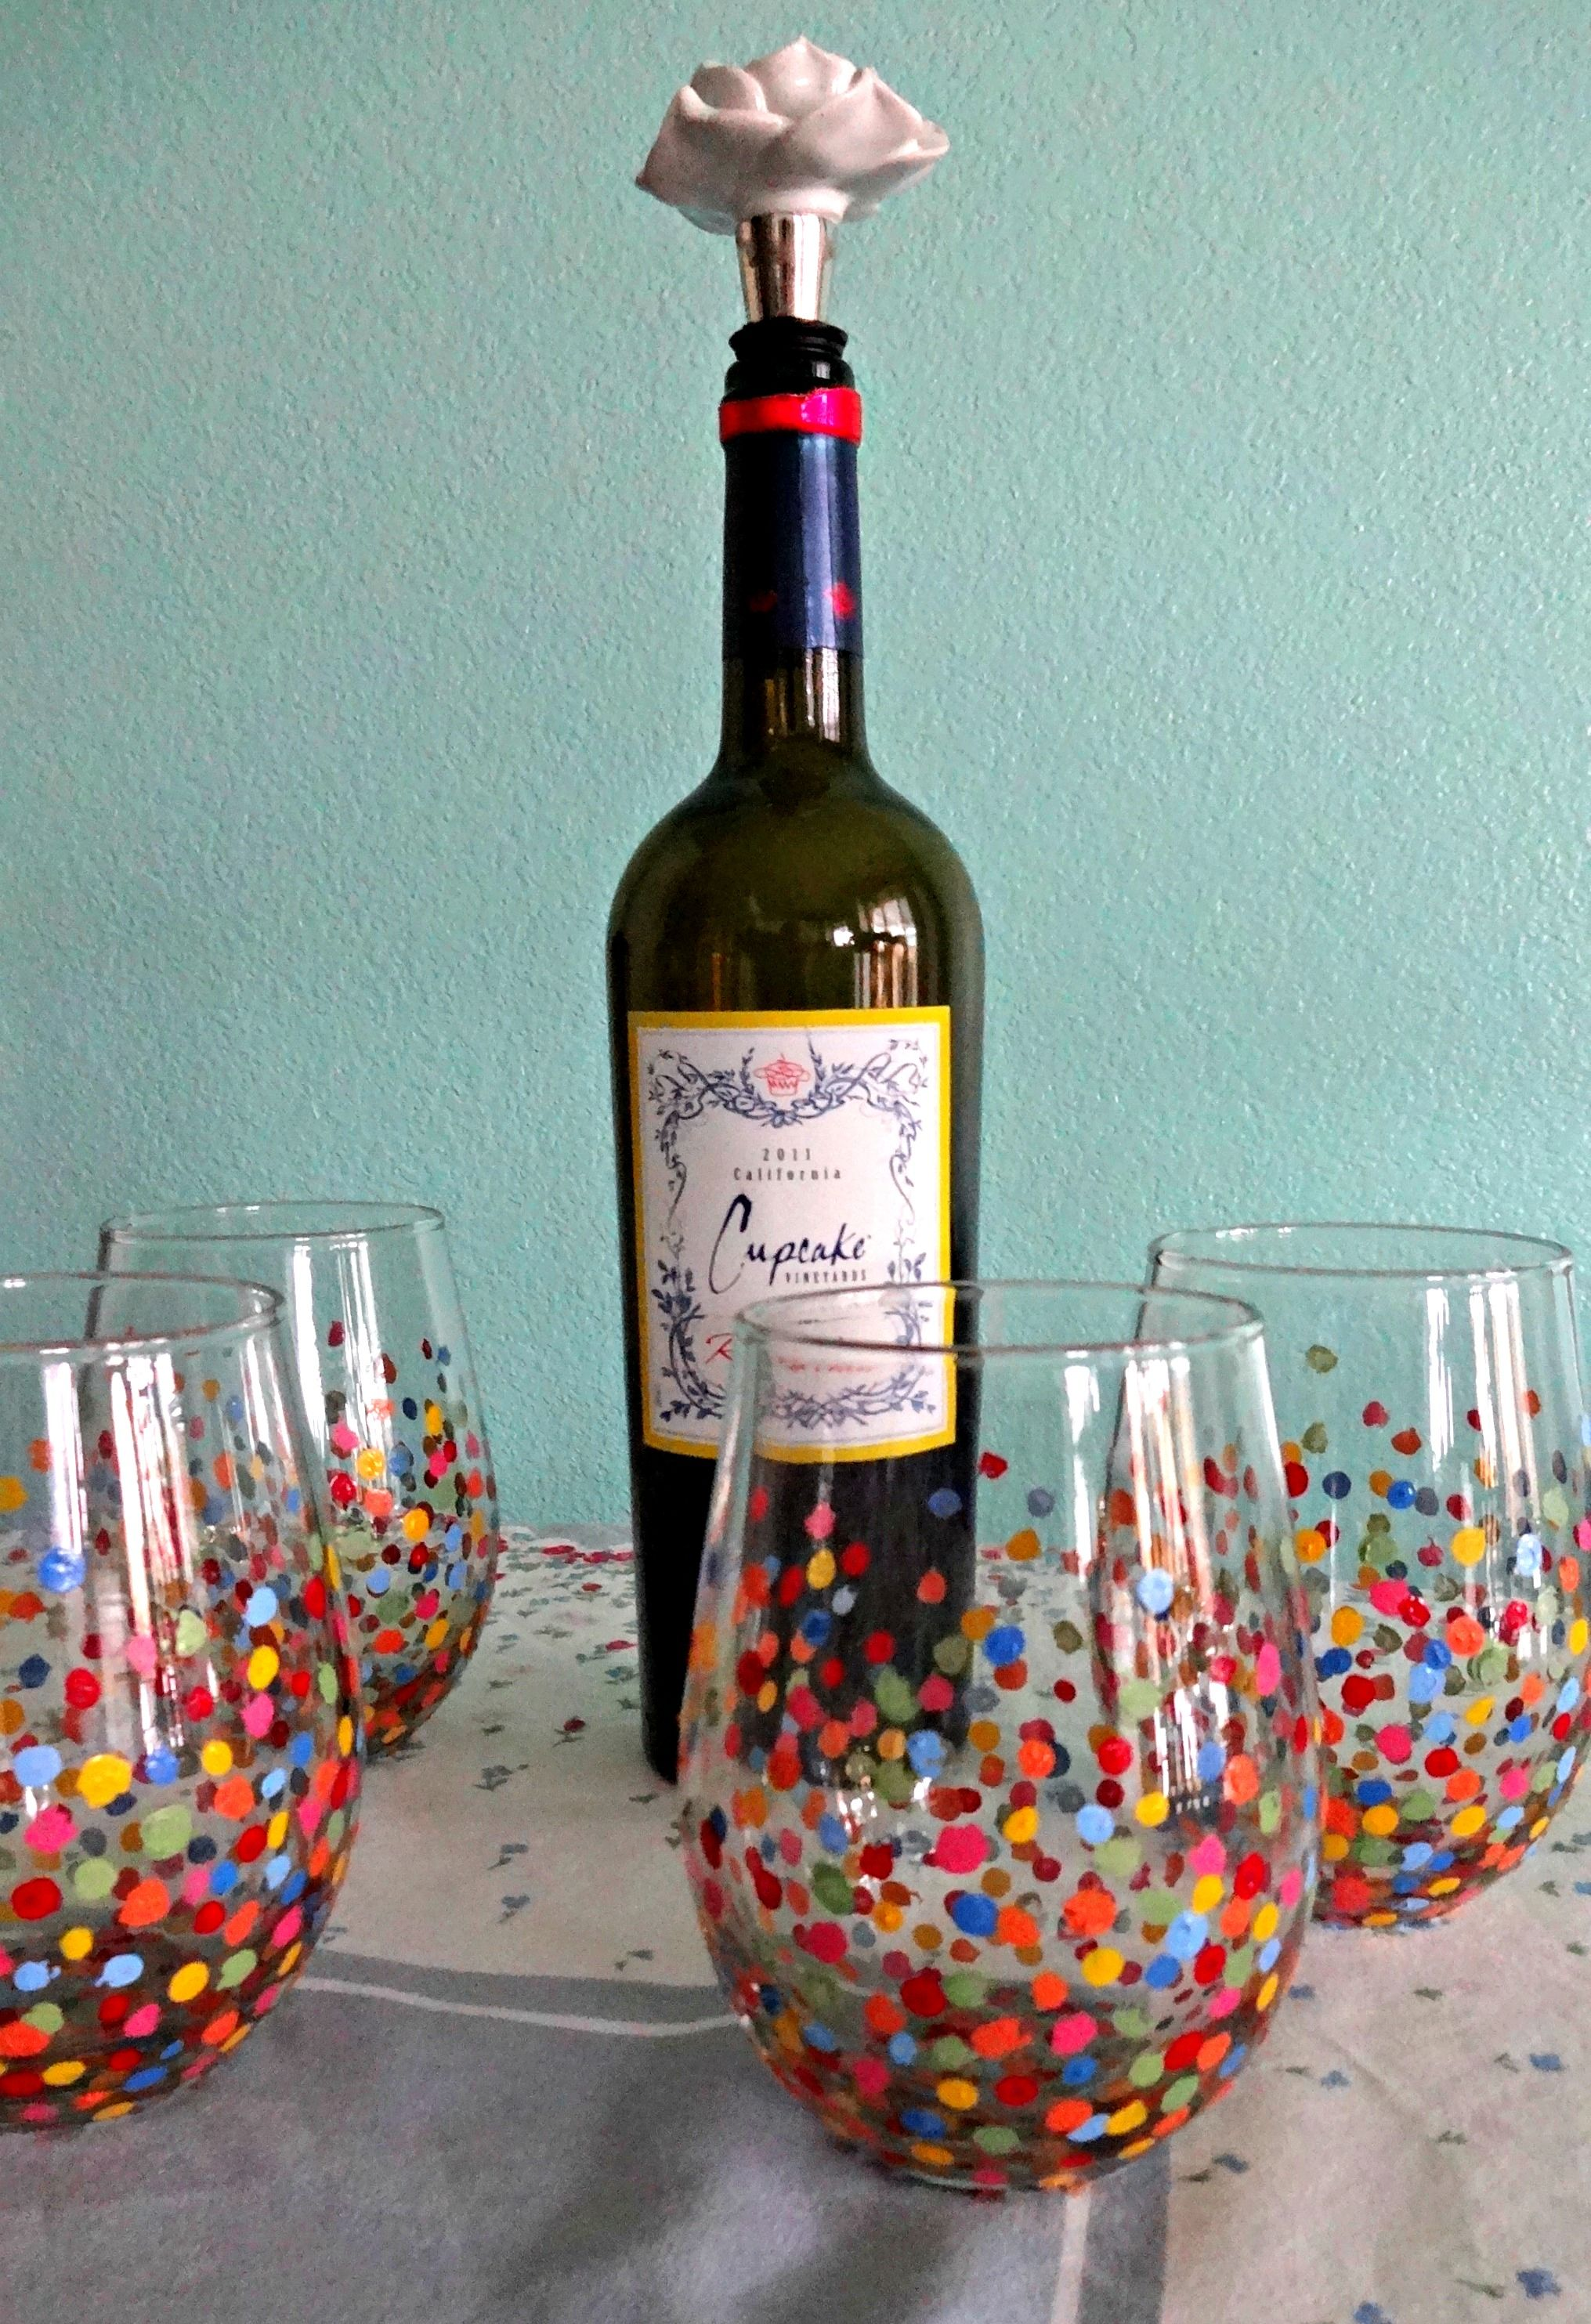 15 Painted Wine Glass Projects To Use At Diy Gifts Diy Wine Glasses Painted Wine Glass Crafts Painted Wine Glass